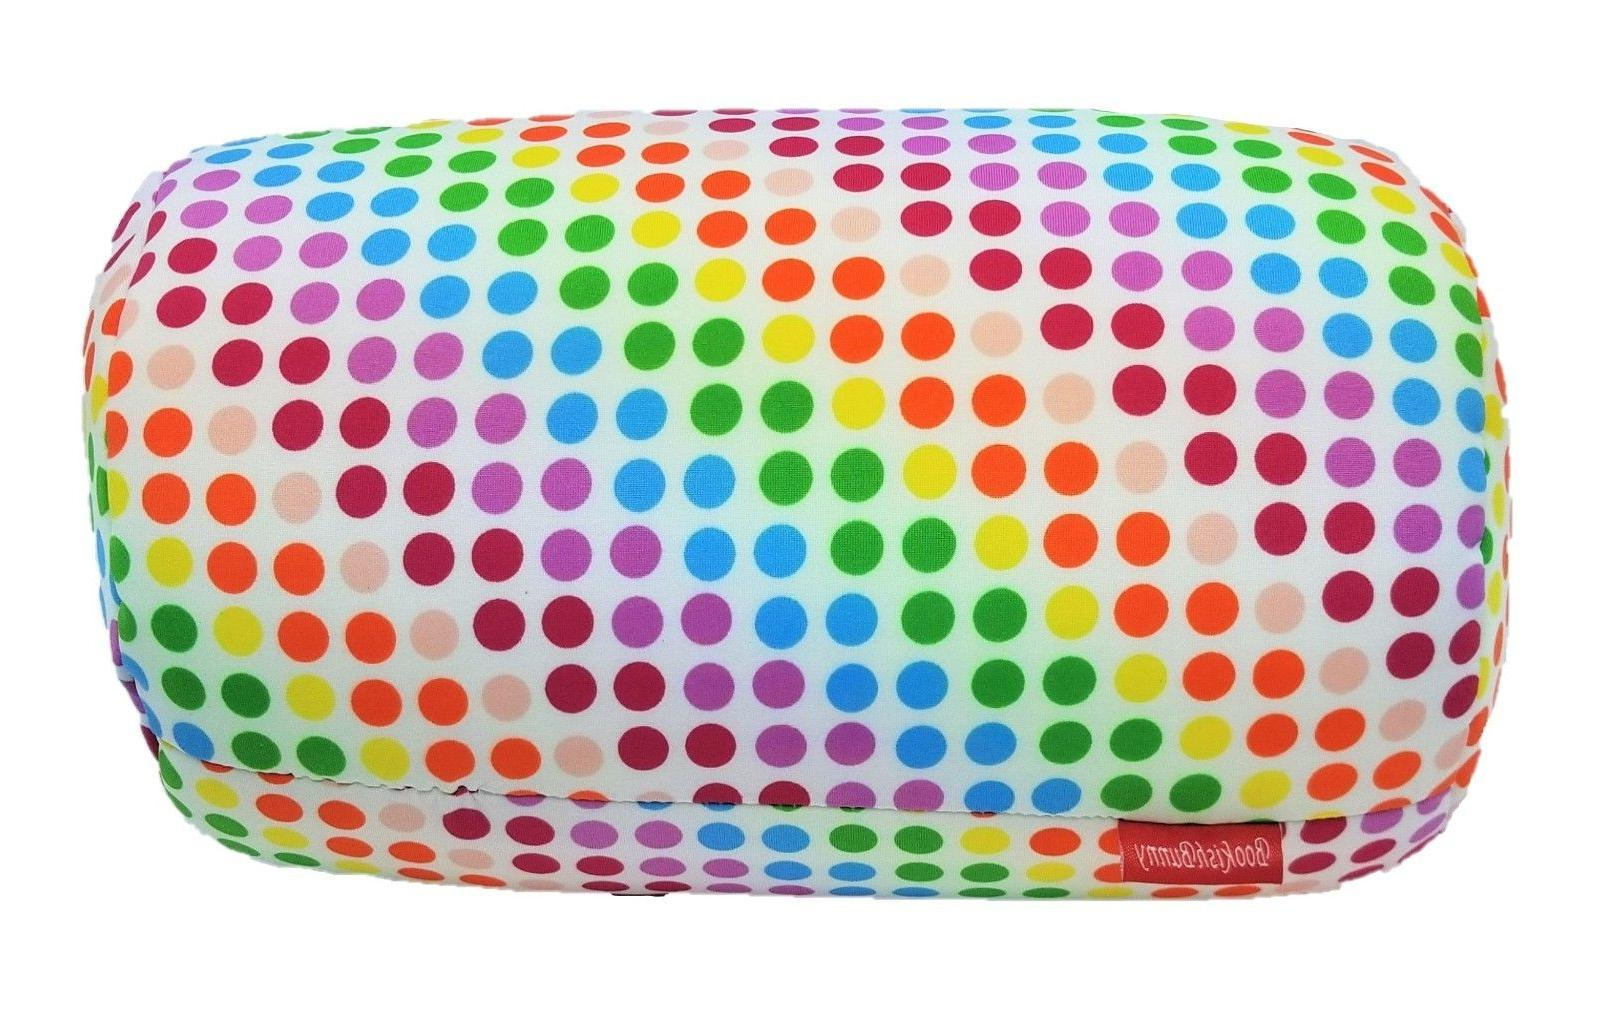 Bed Chair Cushion Soft Tube Back Pillow